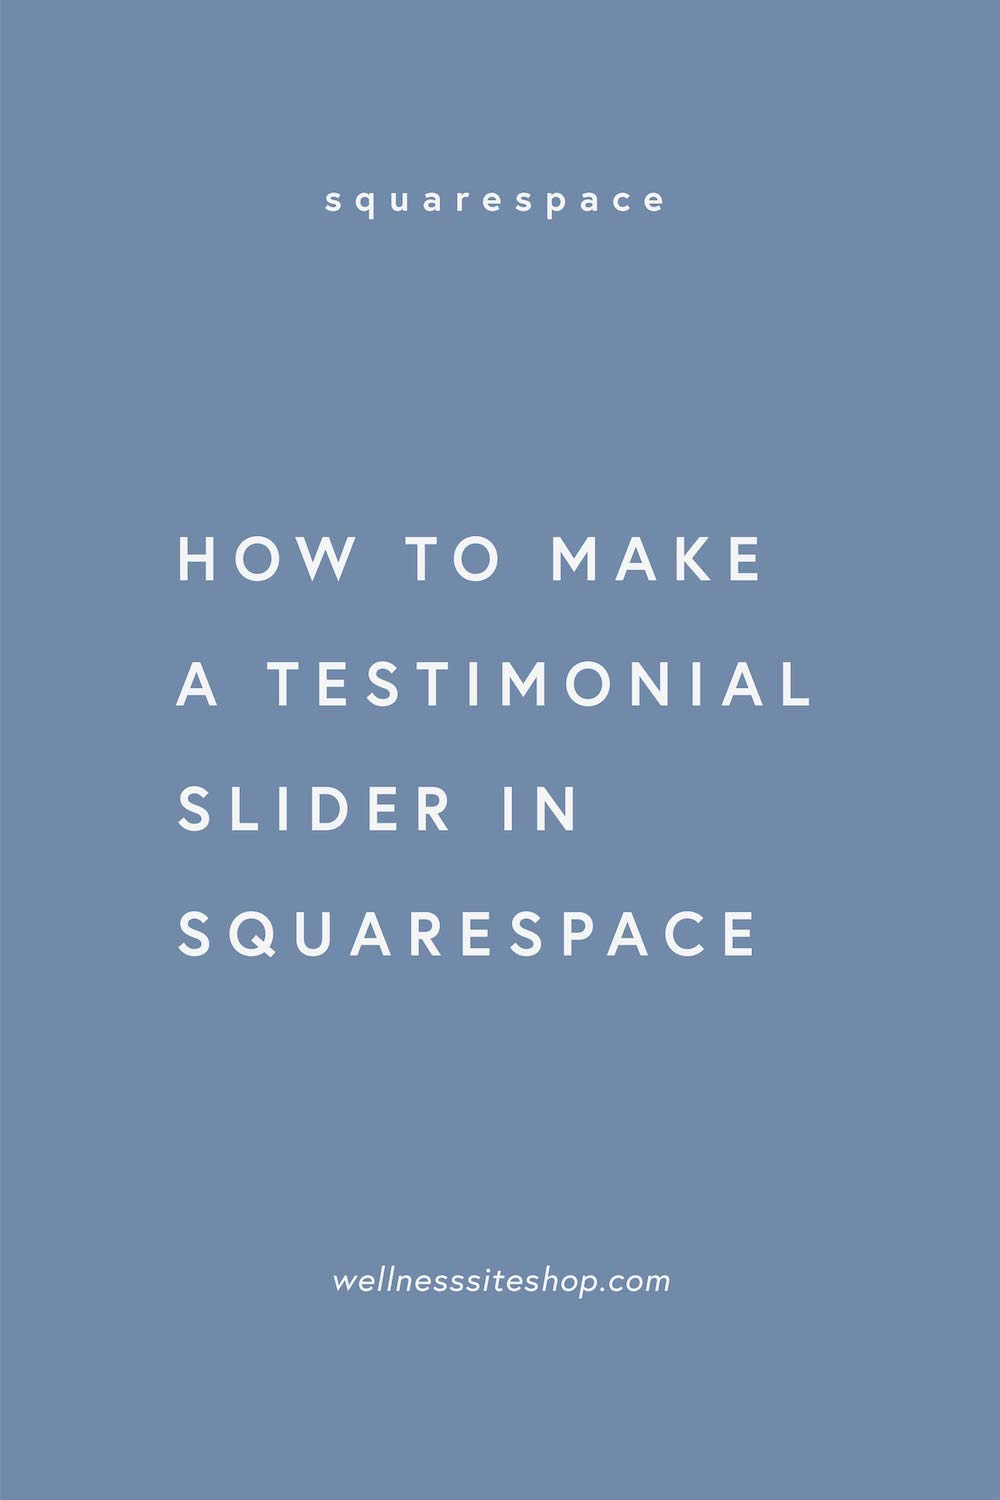 How to make a testimonial slider in squarespace **.jpg